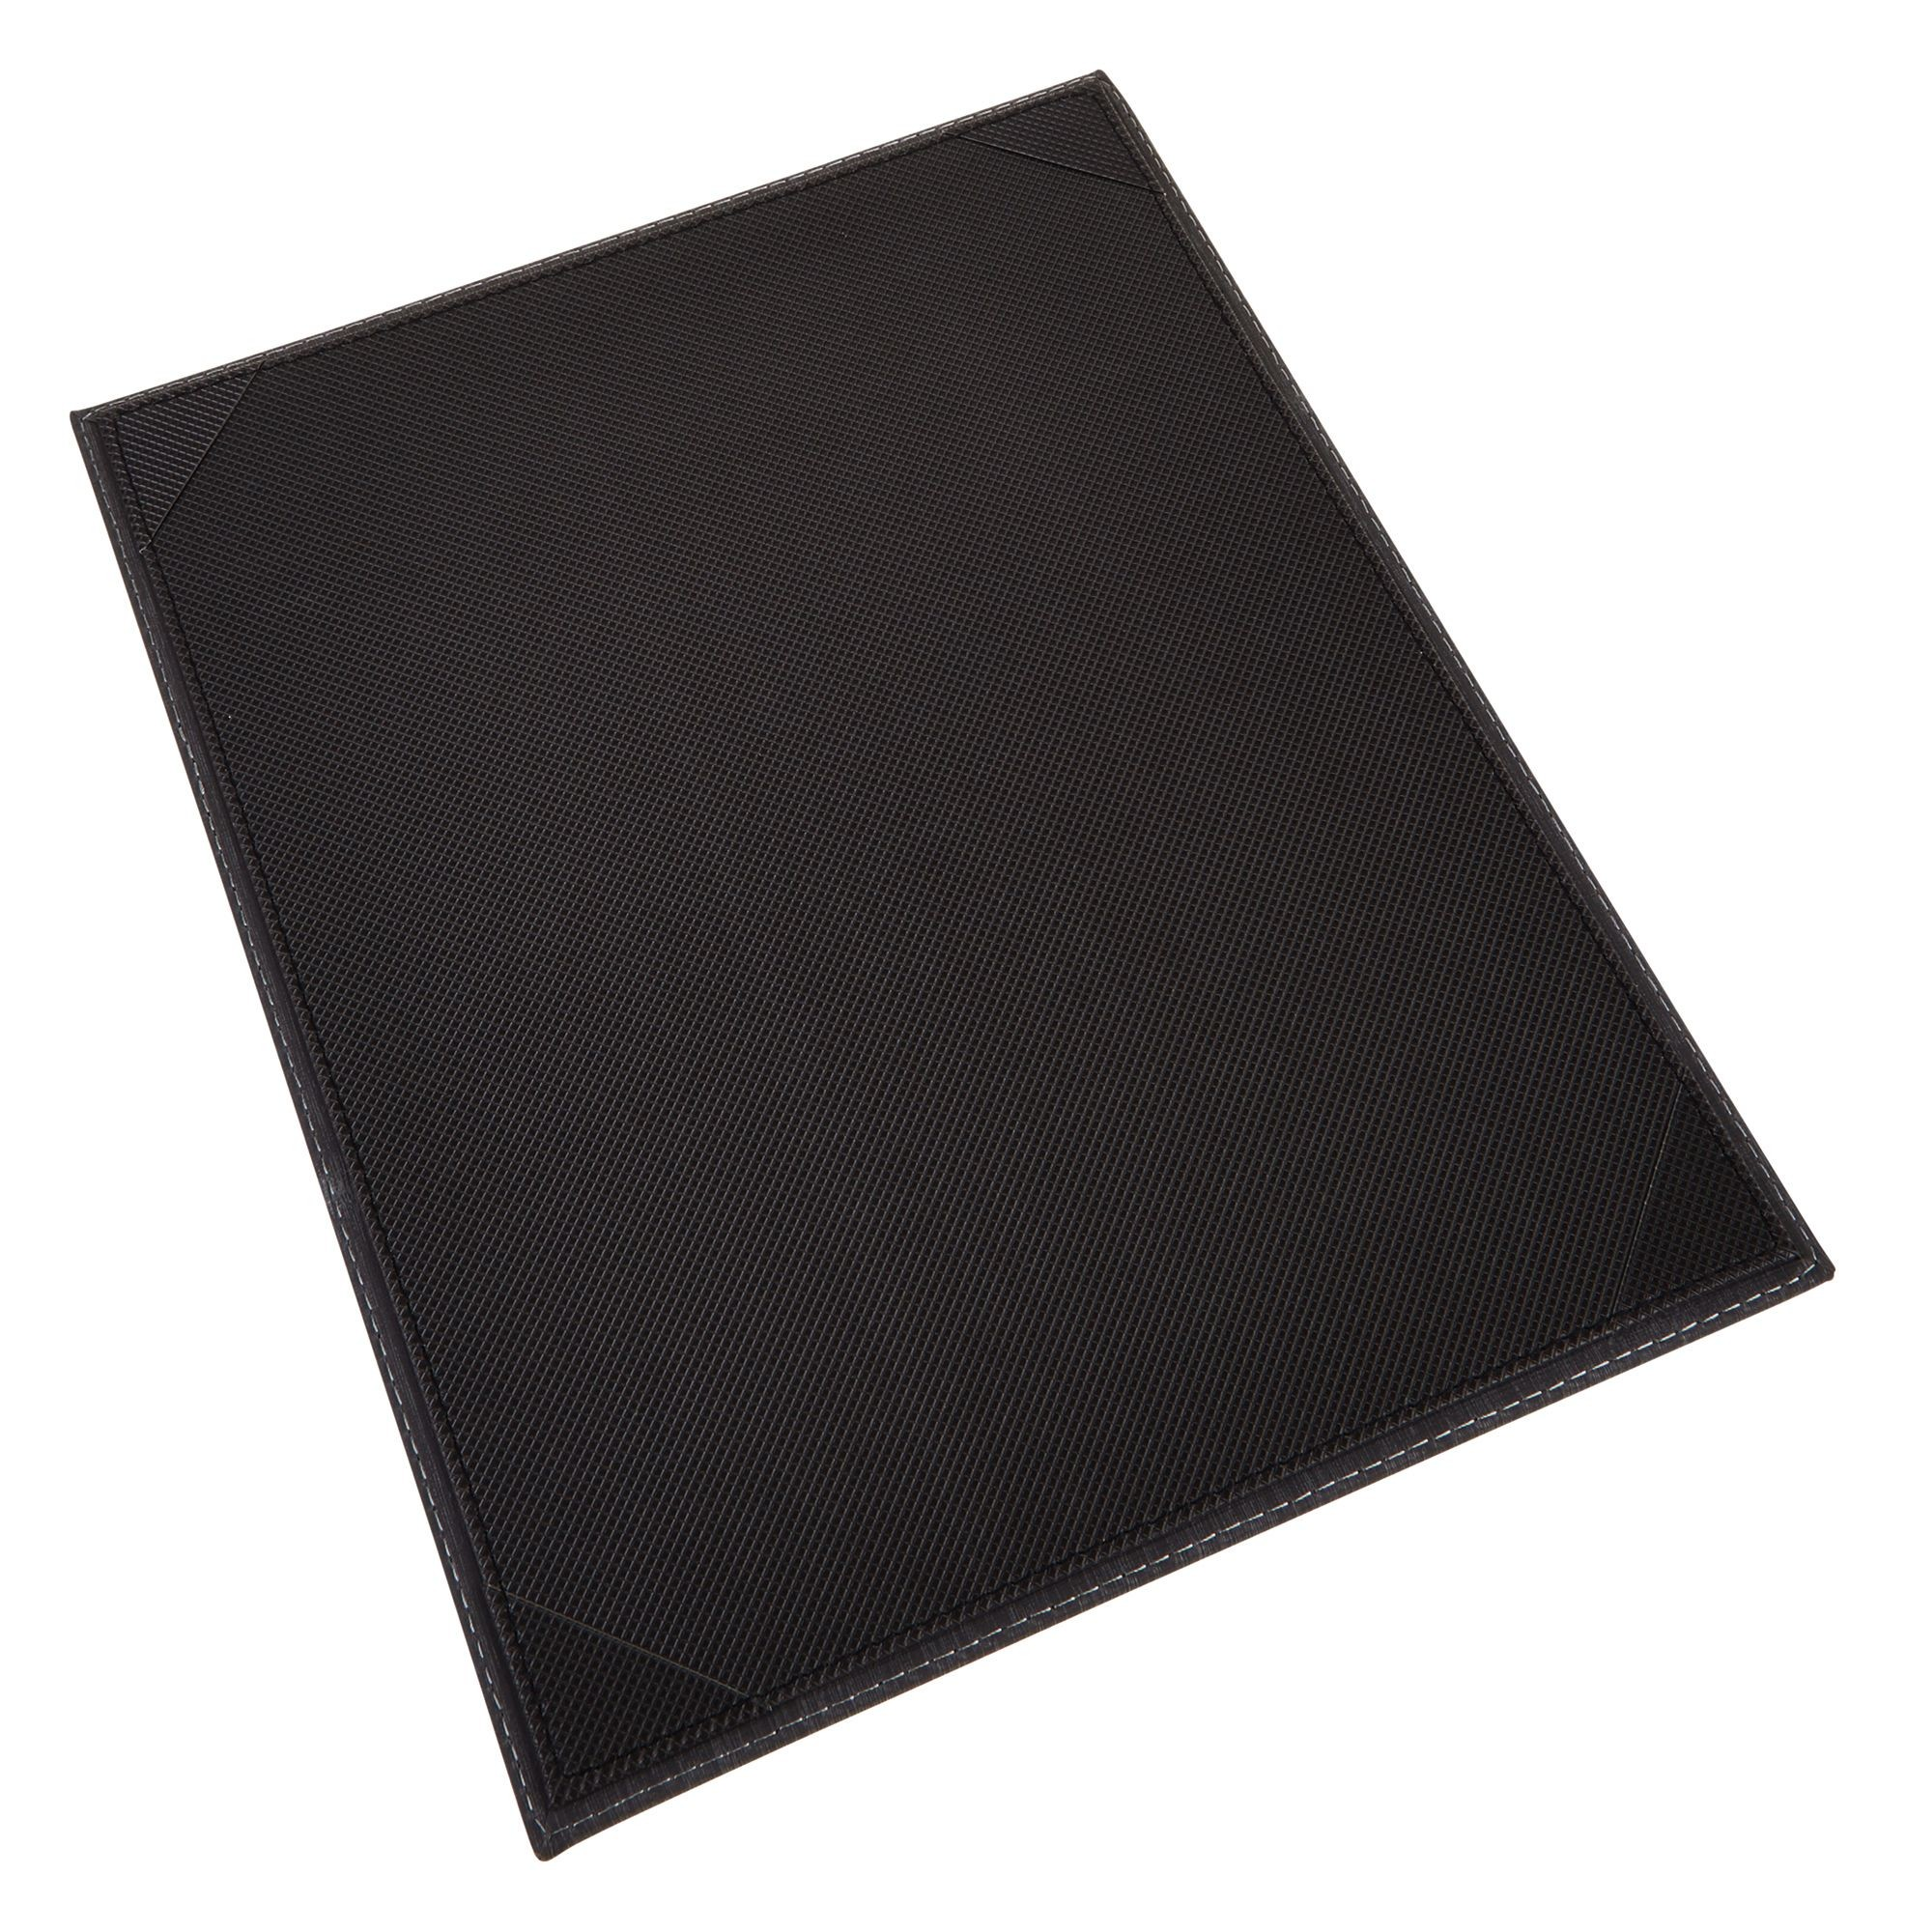 "Winco LMS-811BK 8-1/2"" x 11"" Black Leatherette Single Panel Menu Cover"